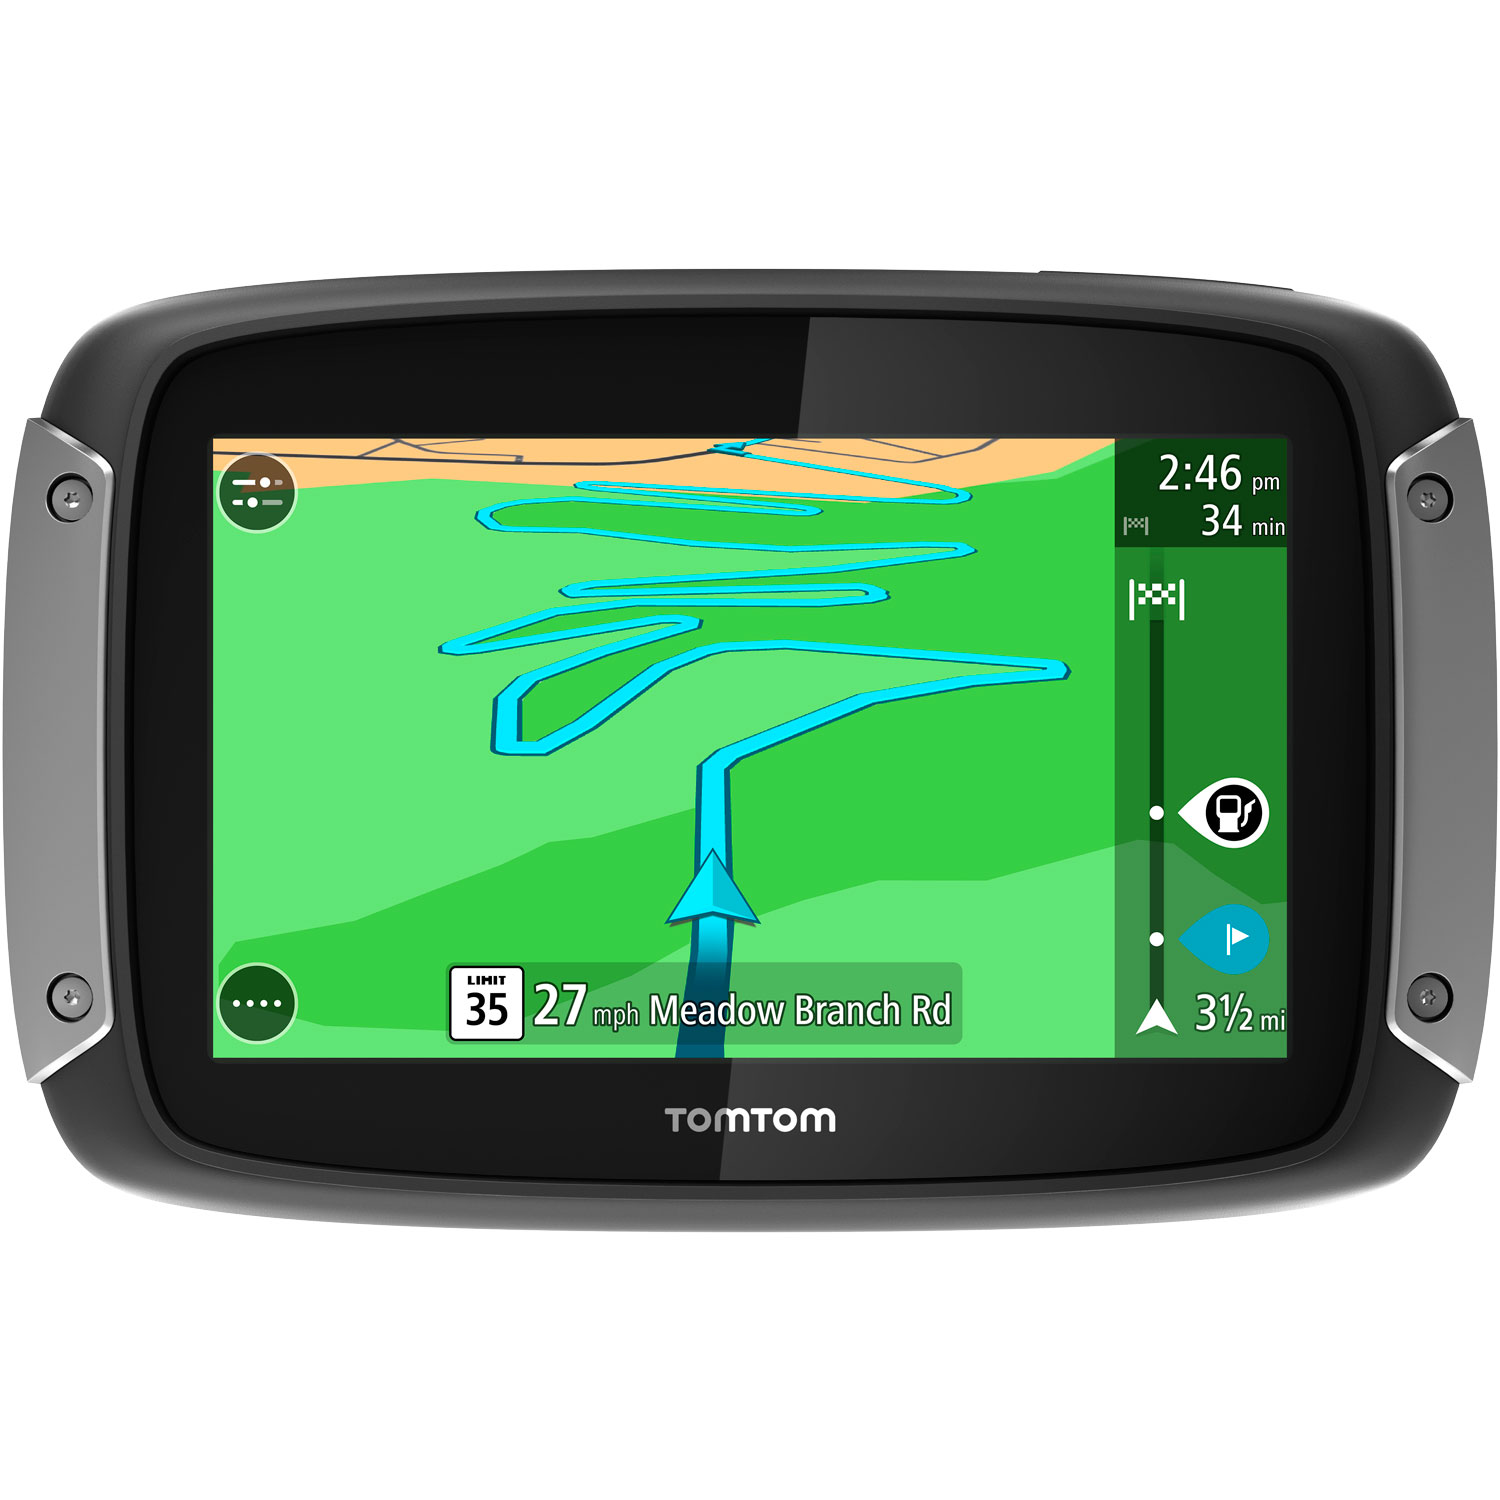 tomtom rider 400 motorcycle gps navigation device. Black Bedroom Furniture Sets. Home Design Ideas